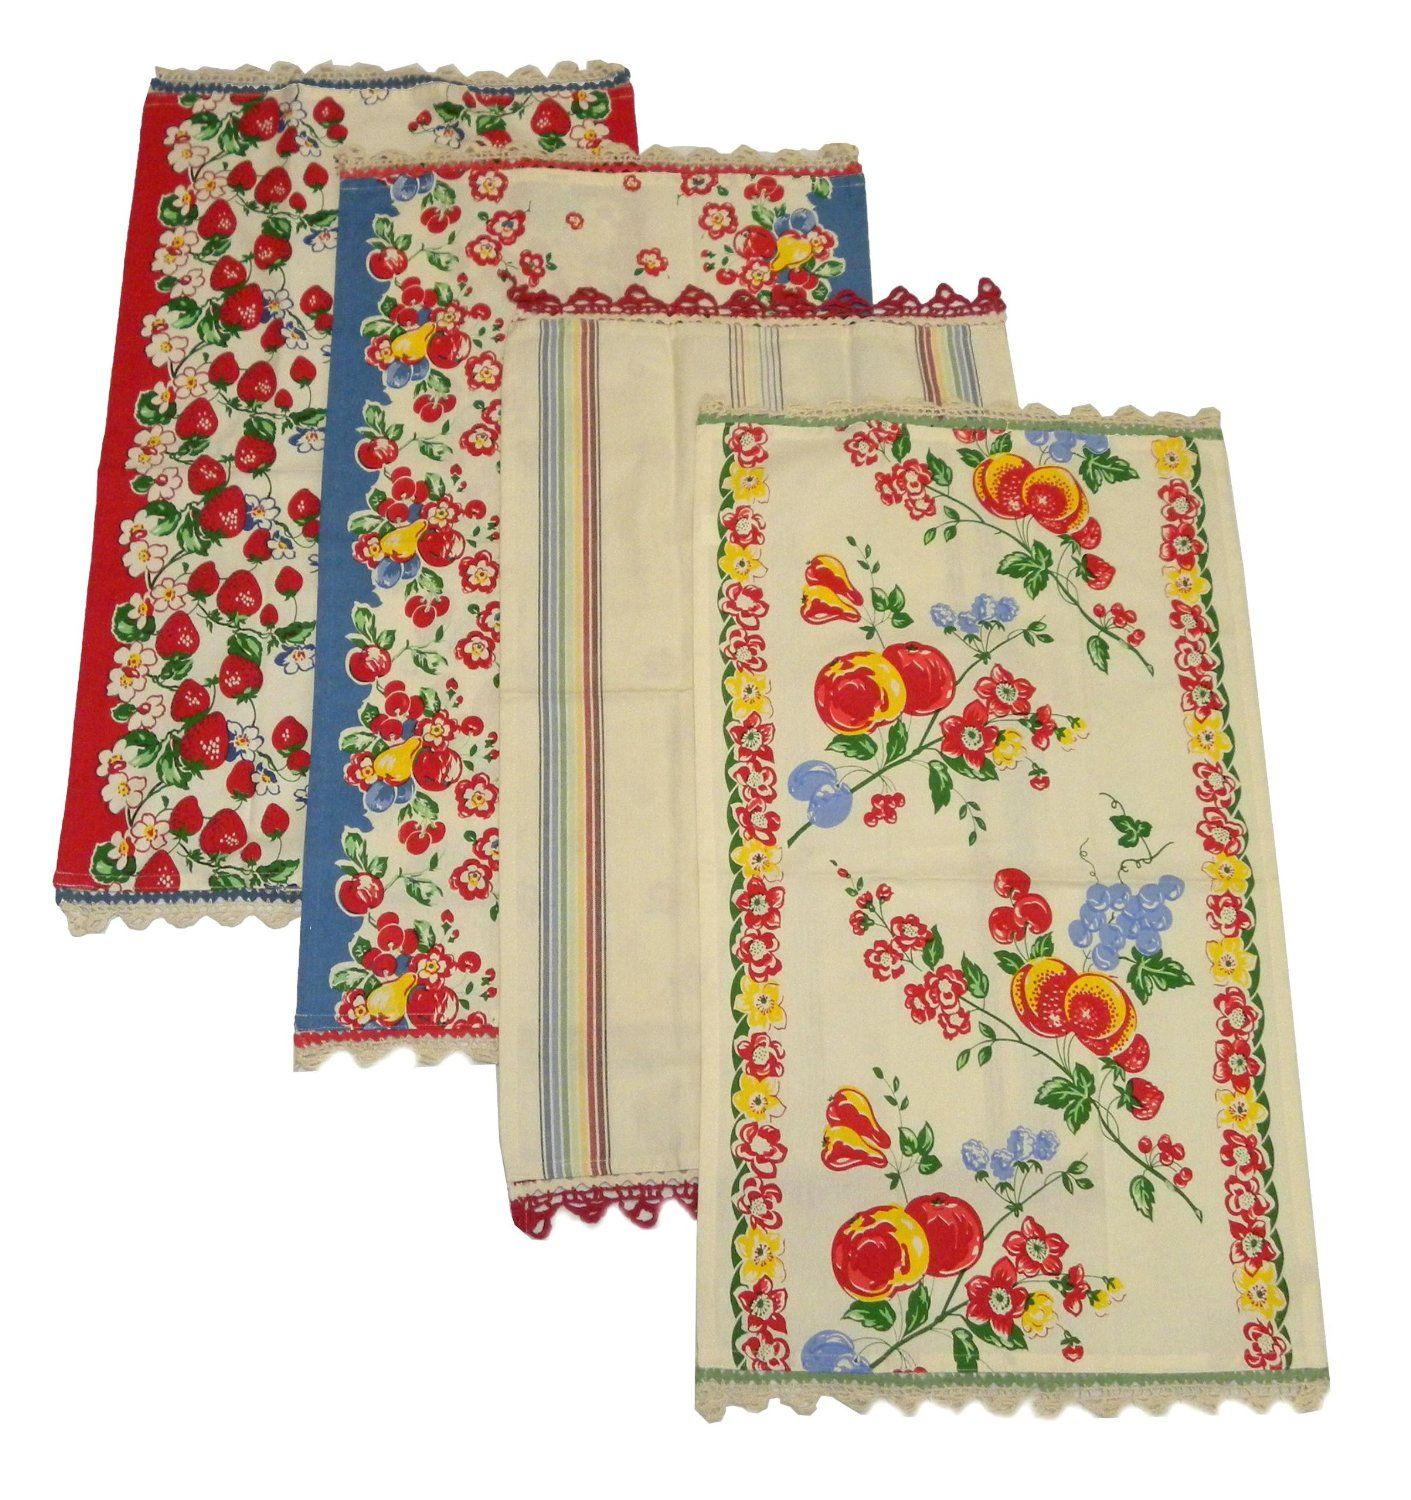 Christmas Kitchen Towels At Walmart: Berries Jubilee Kitchen Dish Towels By Moda